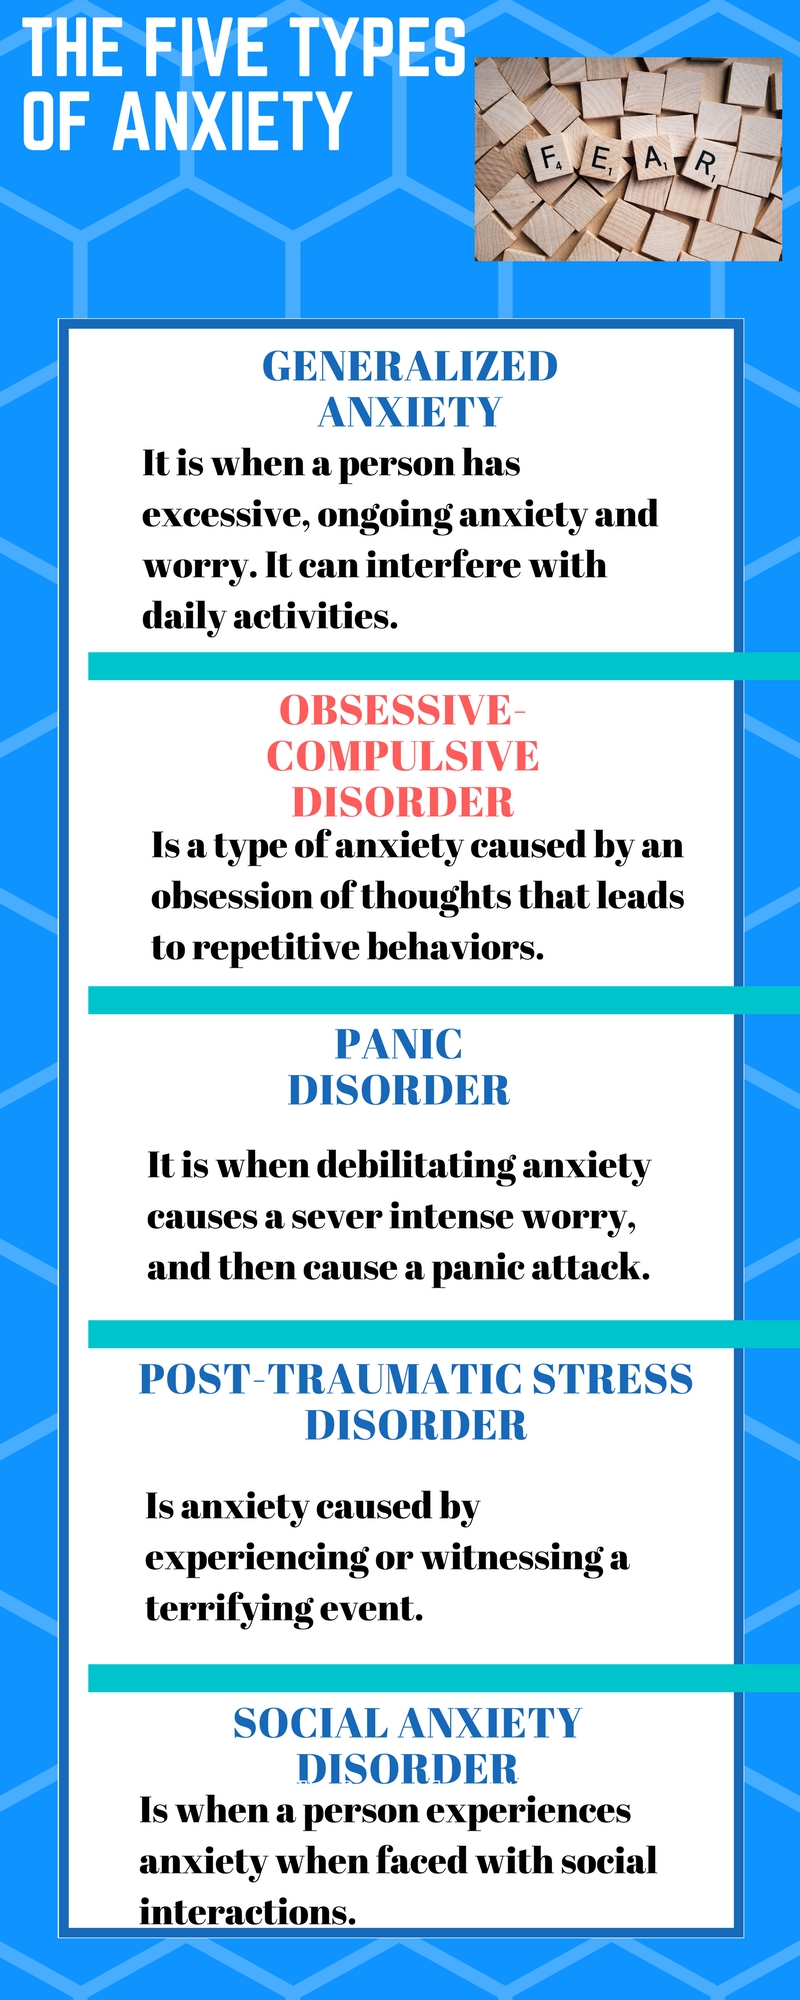 Understanding Generalized Anxiety >> Anxiety What It Is What To Do Social Media As News Cod